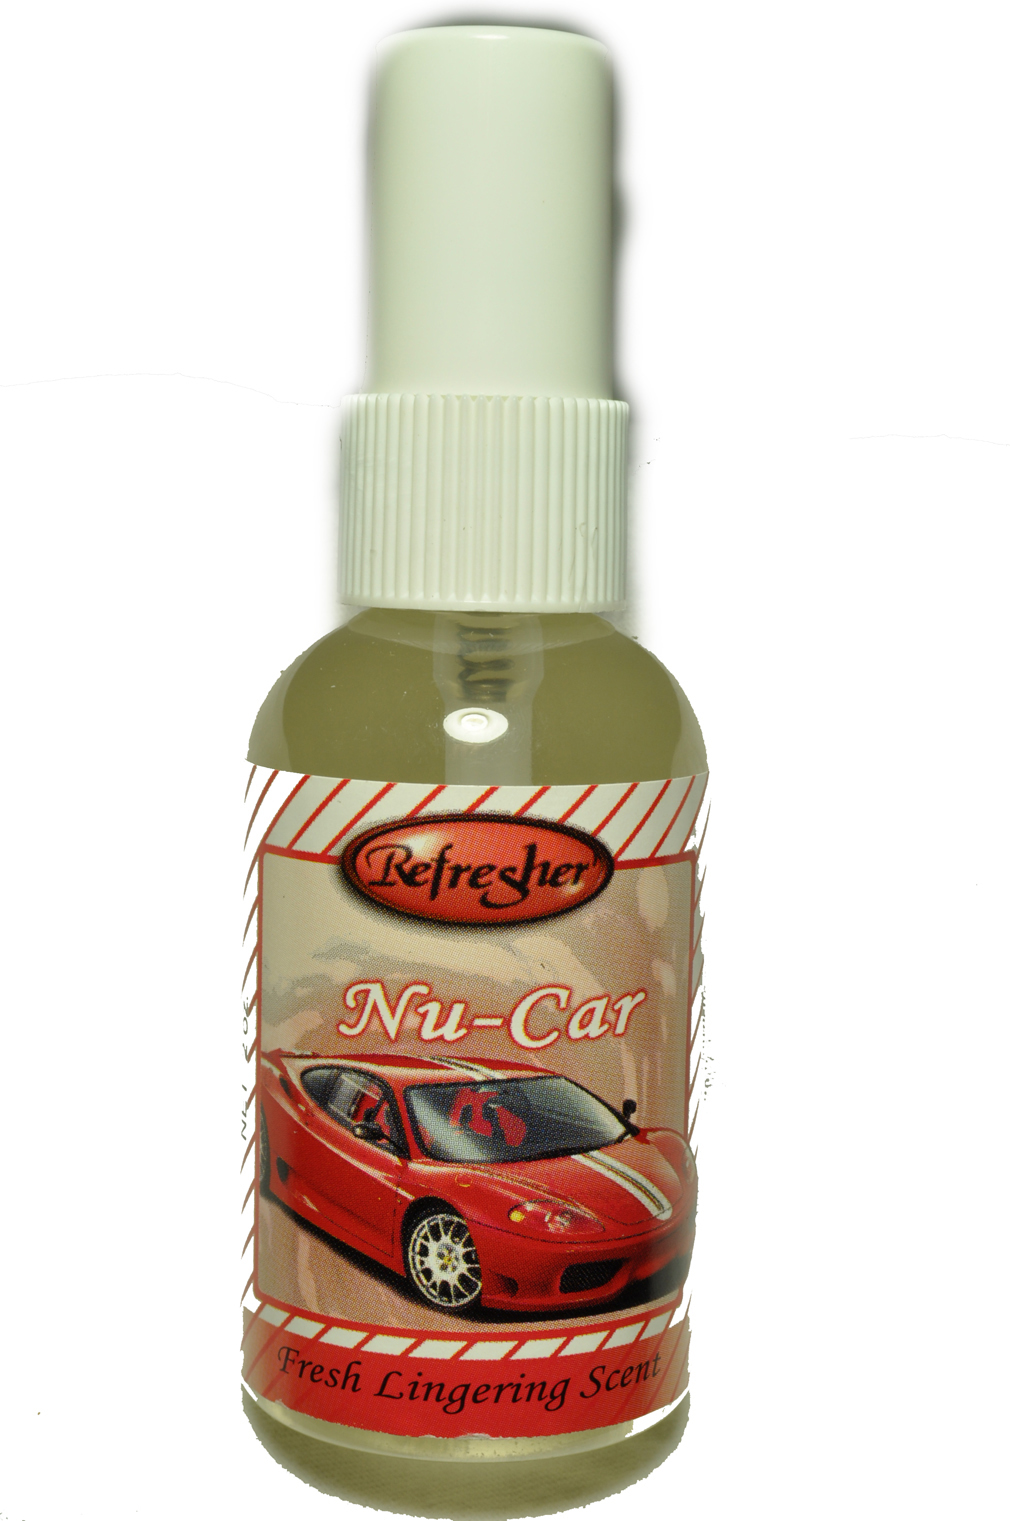 nu car refresher spray 2oz 34 0135 04